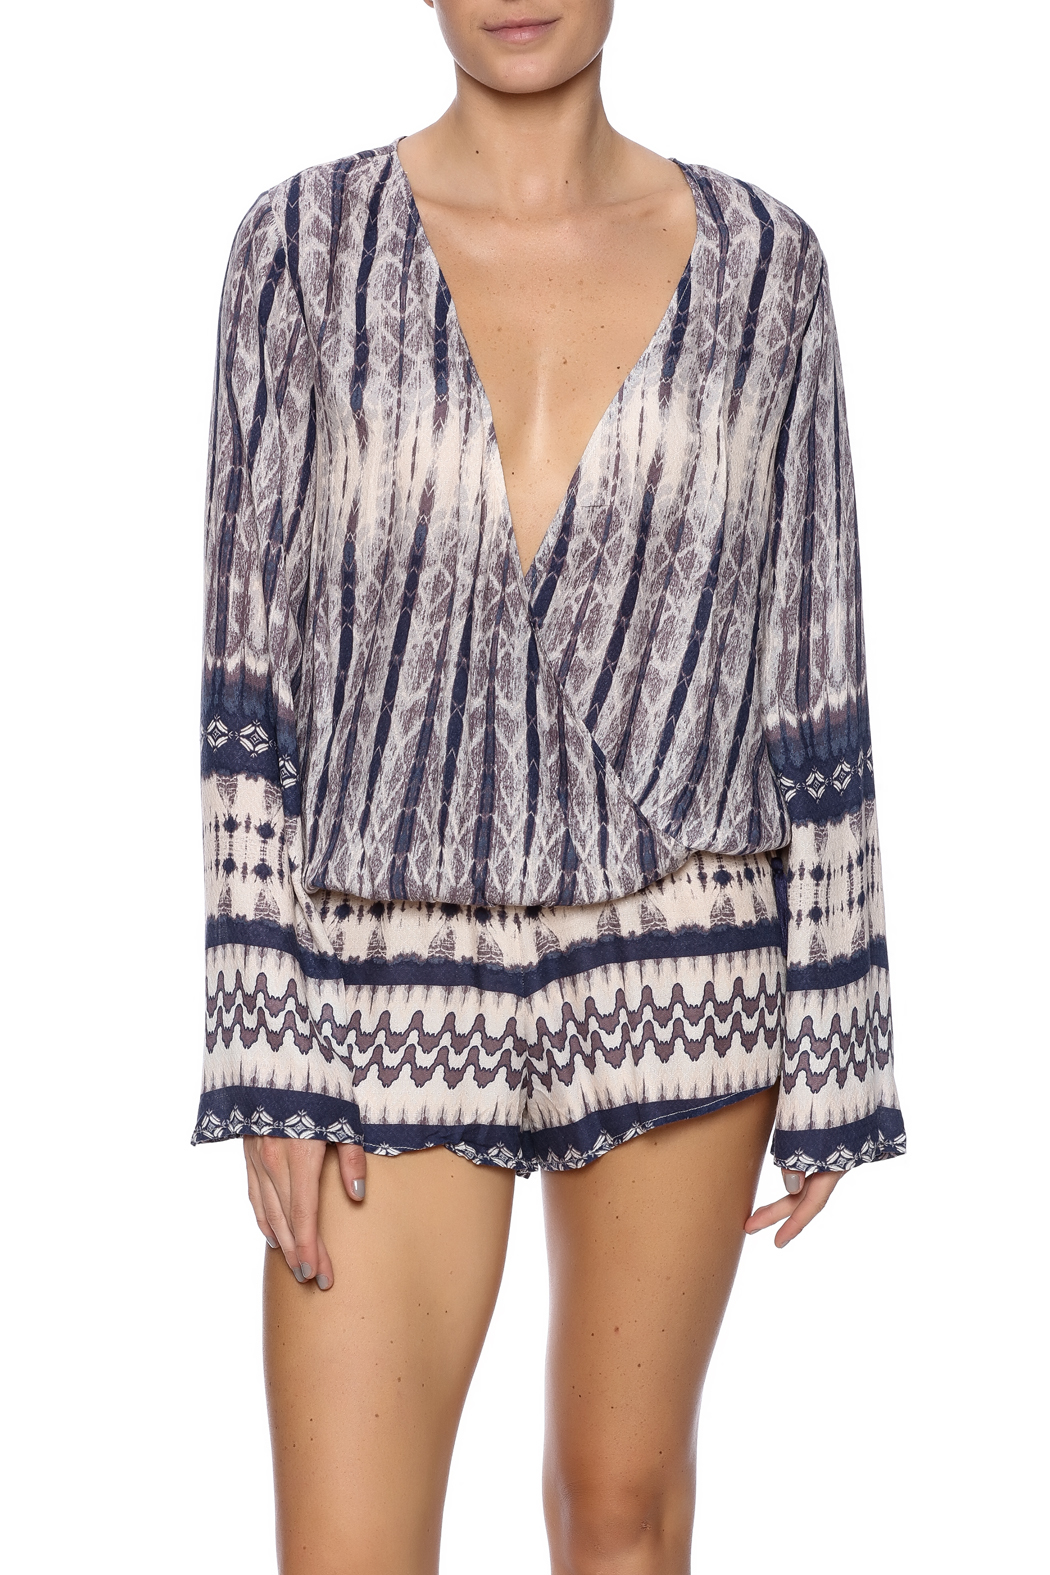 0e50bd36616f5 Honey Punch Print Wrap Top from New York by Dor L Dor — Shoptiques